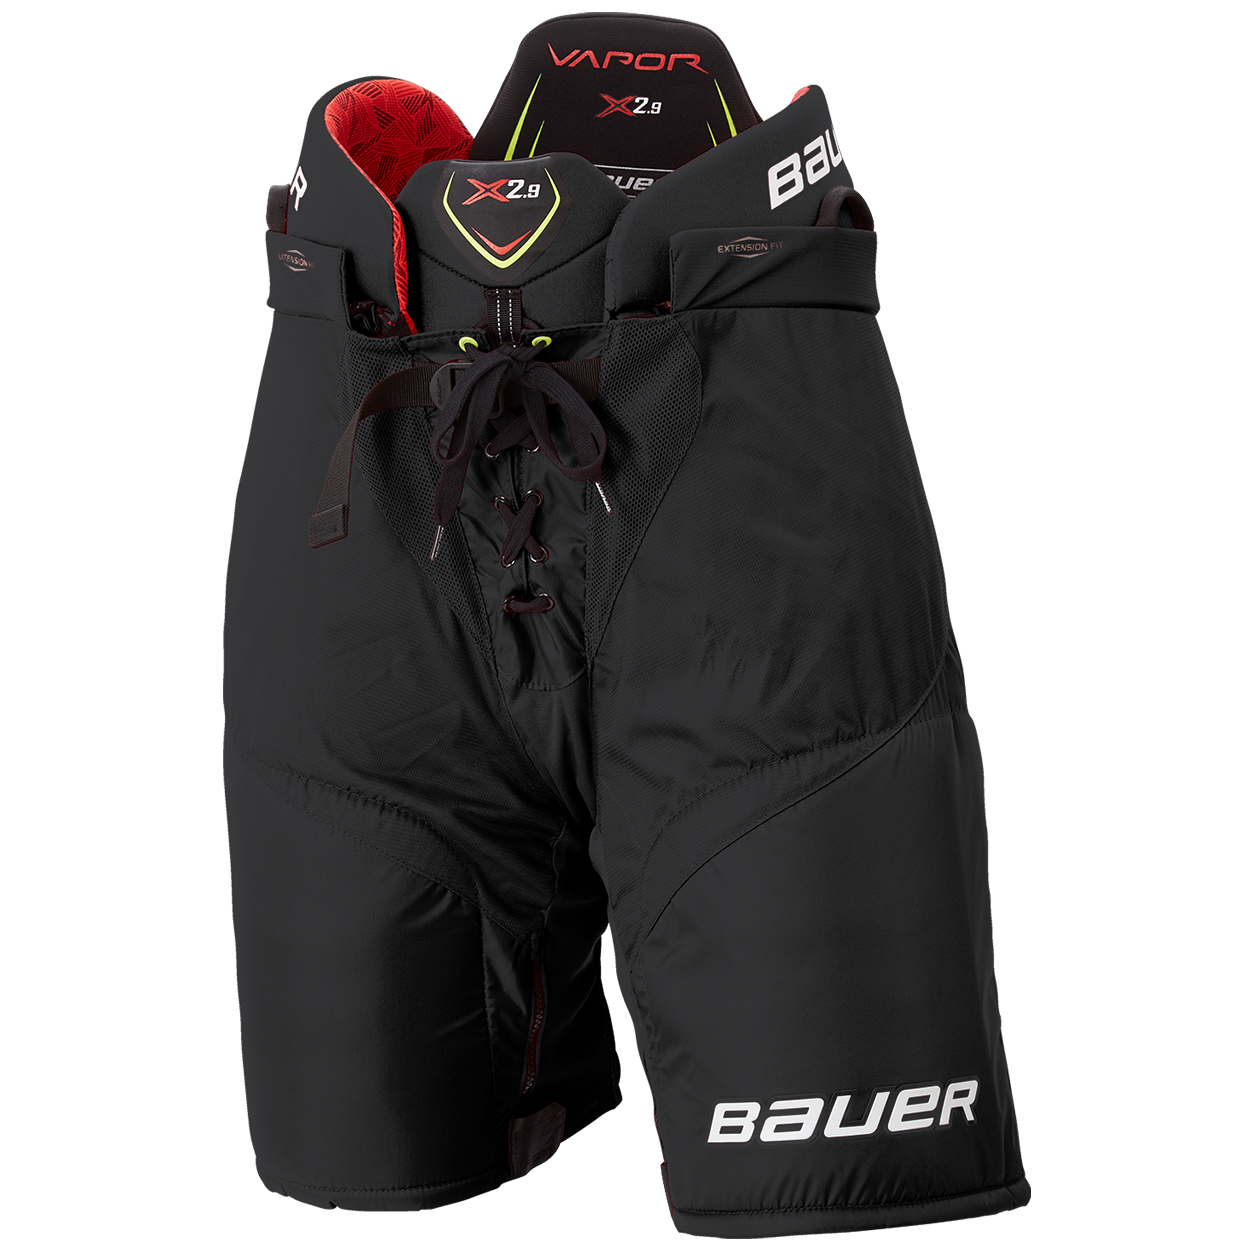 VAPOR X2.9 Pants Senior,Schwarz,Medium